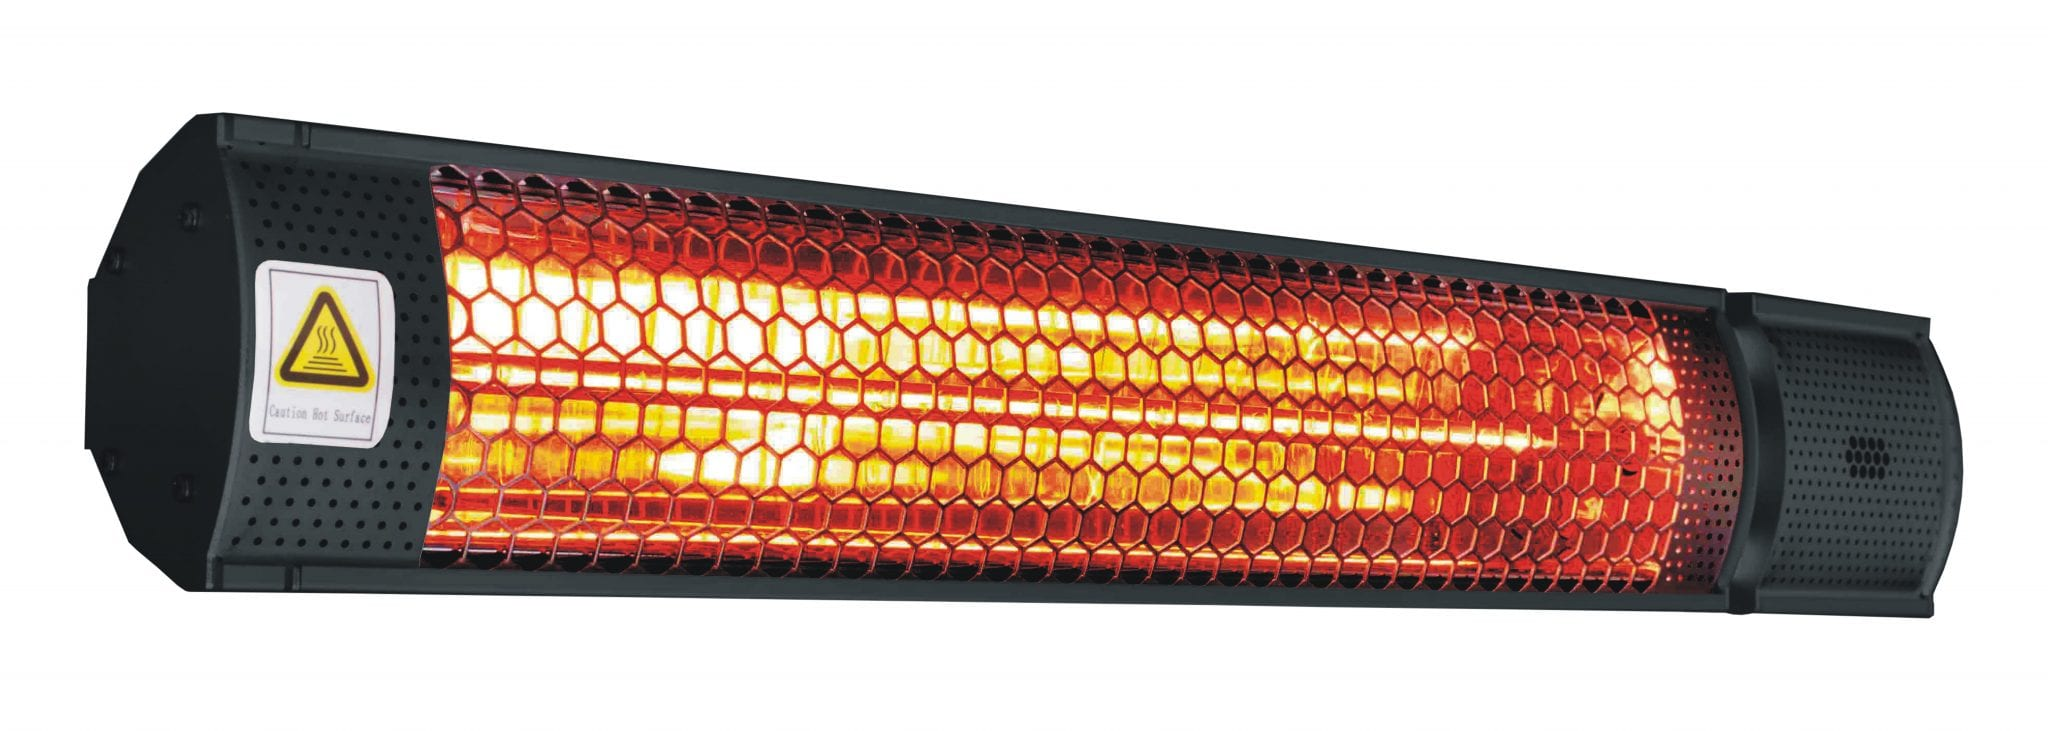 2000W Halogen Wall Mounted Heater_angled